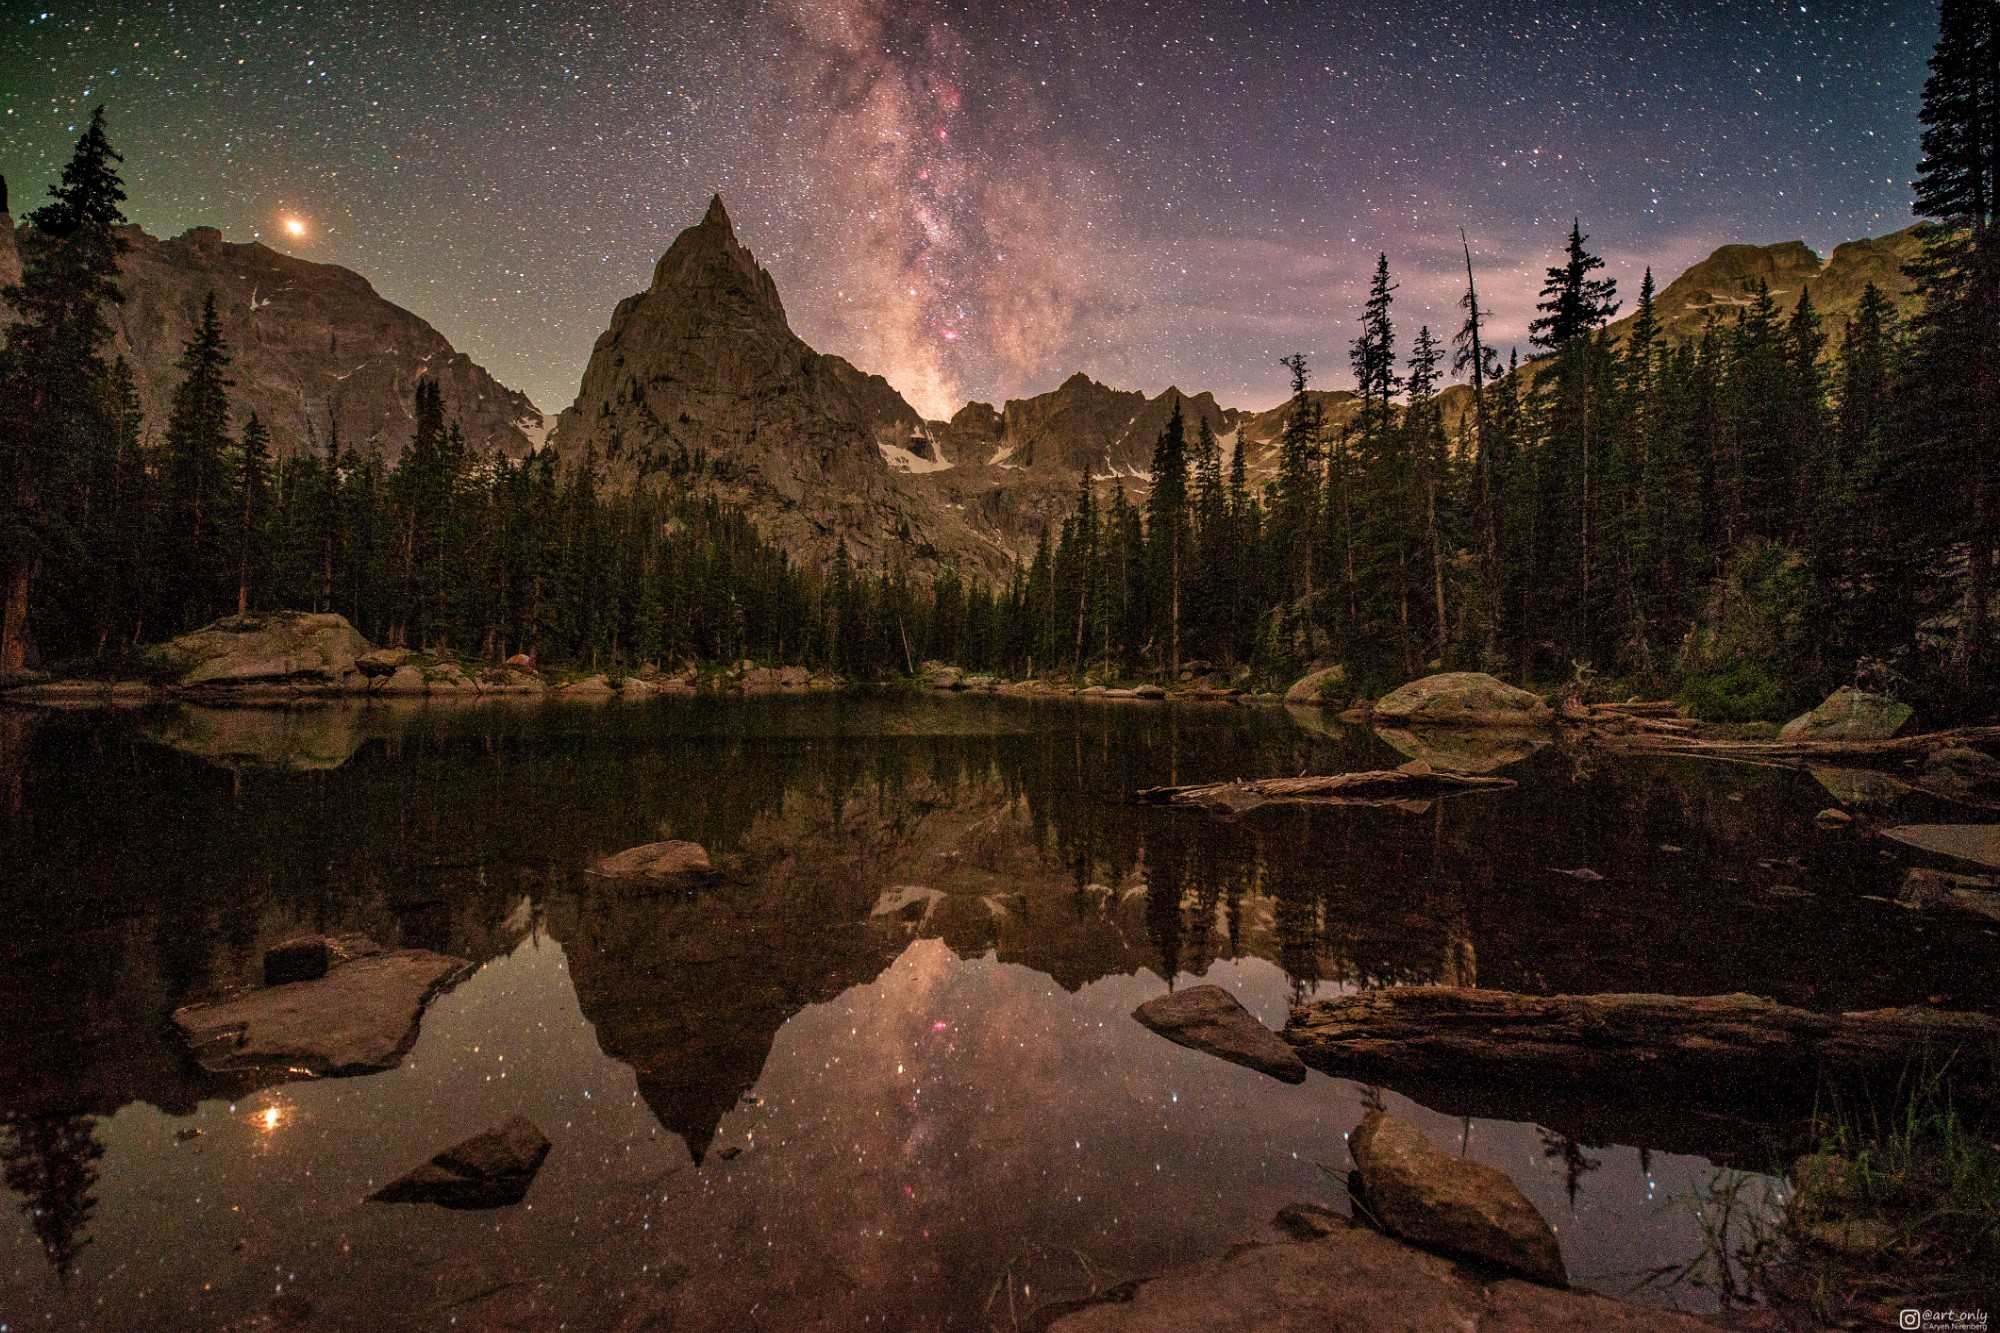 Mars and the Milky Way at a lake in Colorado - aryeh95 - bit.ly2OOreZe